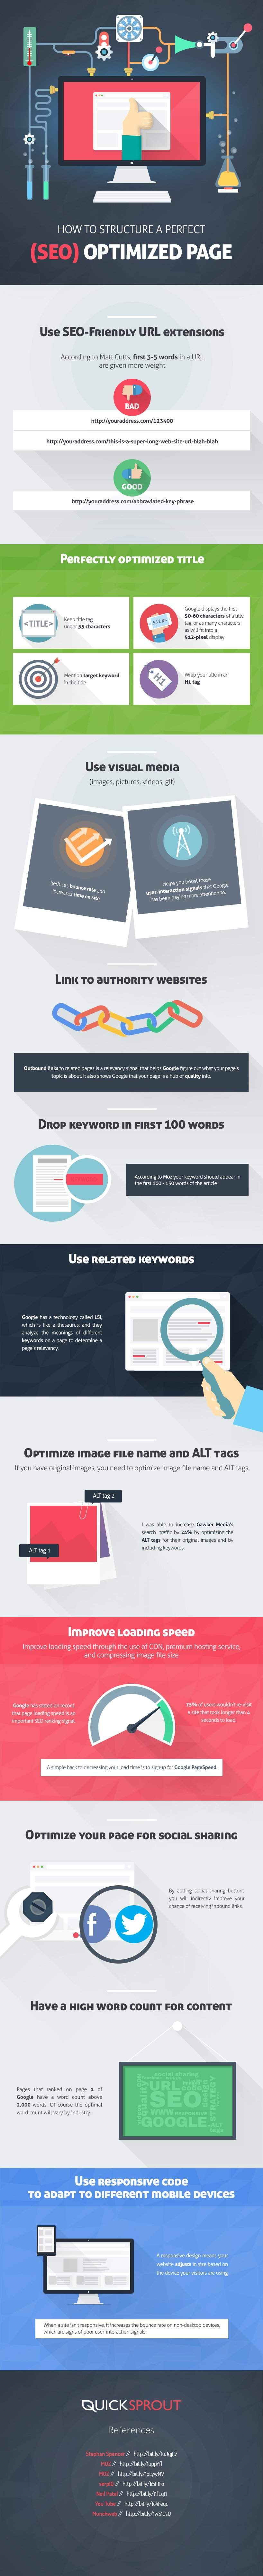 The-Perfect-On-Page-SEO-Checklist-for-2016-Infographic